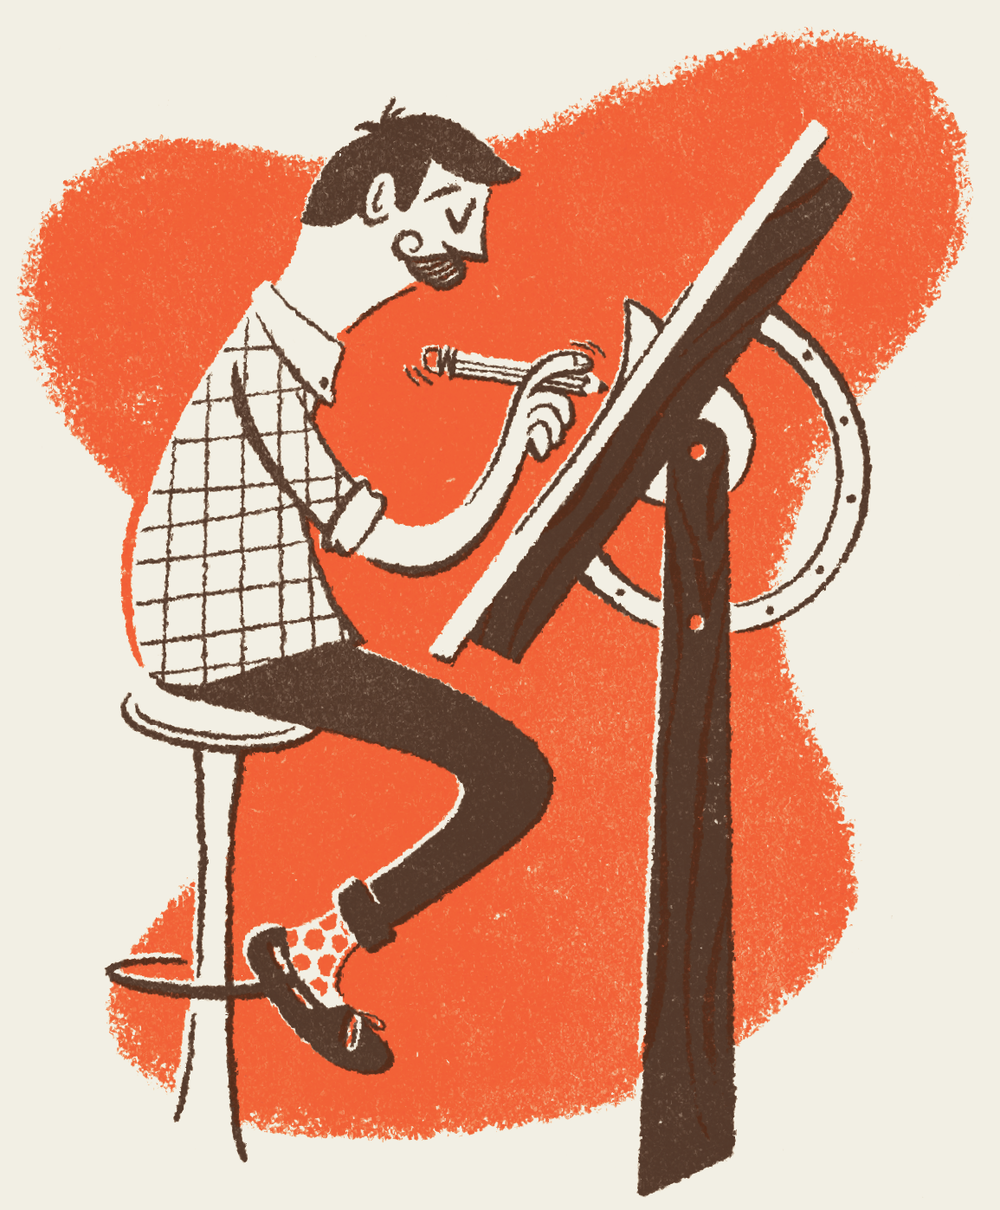 - I'm currently working full-time as a freelancer from my studio in Lansing, Michigan. I'm an illustrator driven by a nostalgic curiosity around typography & illustration. Through my work, I hope to re-inspire that childhood sense of wonder that still lives inside of all of us and to make the world a friendlier place.*Represented by Closer&Closer